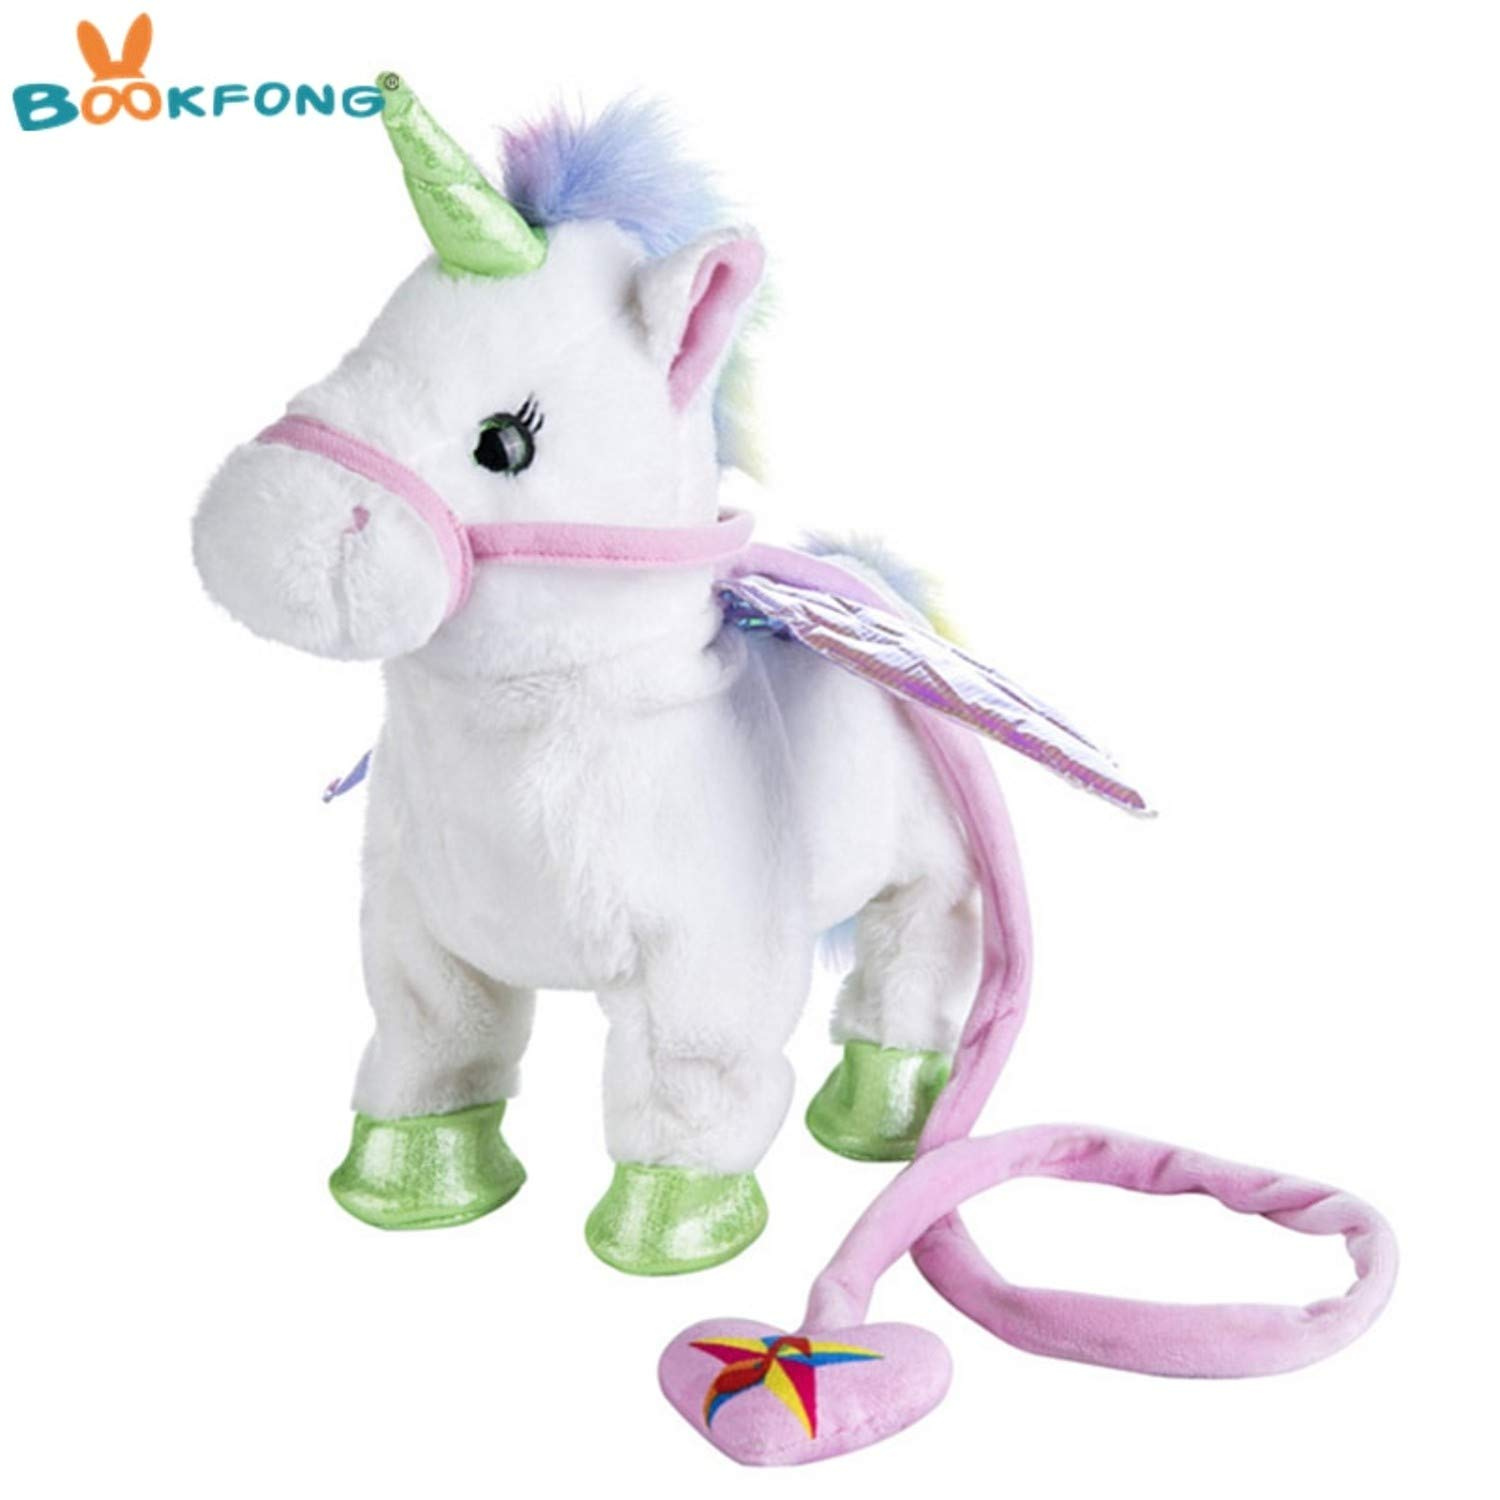 Amazon.com: JEWH Lovely Electric Walking Unicorn Plush Toy - Soft Stuffed Animal Electronic Unicorn Doll - Sing The Song for Baby Birthday Gifts (35cm)  ...